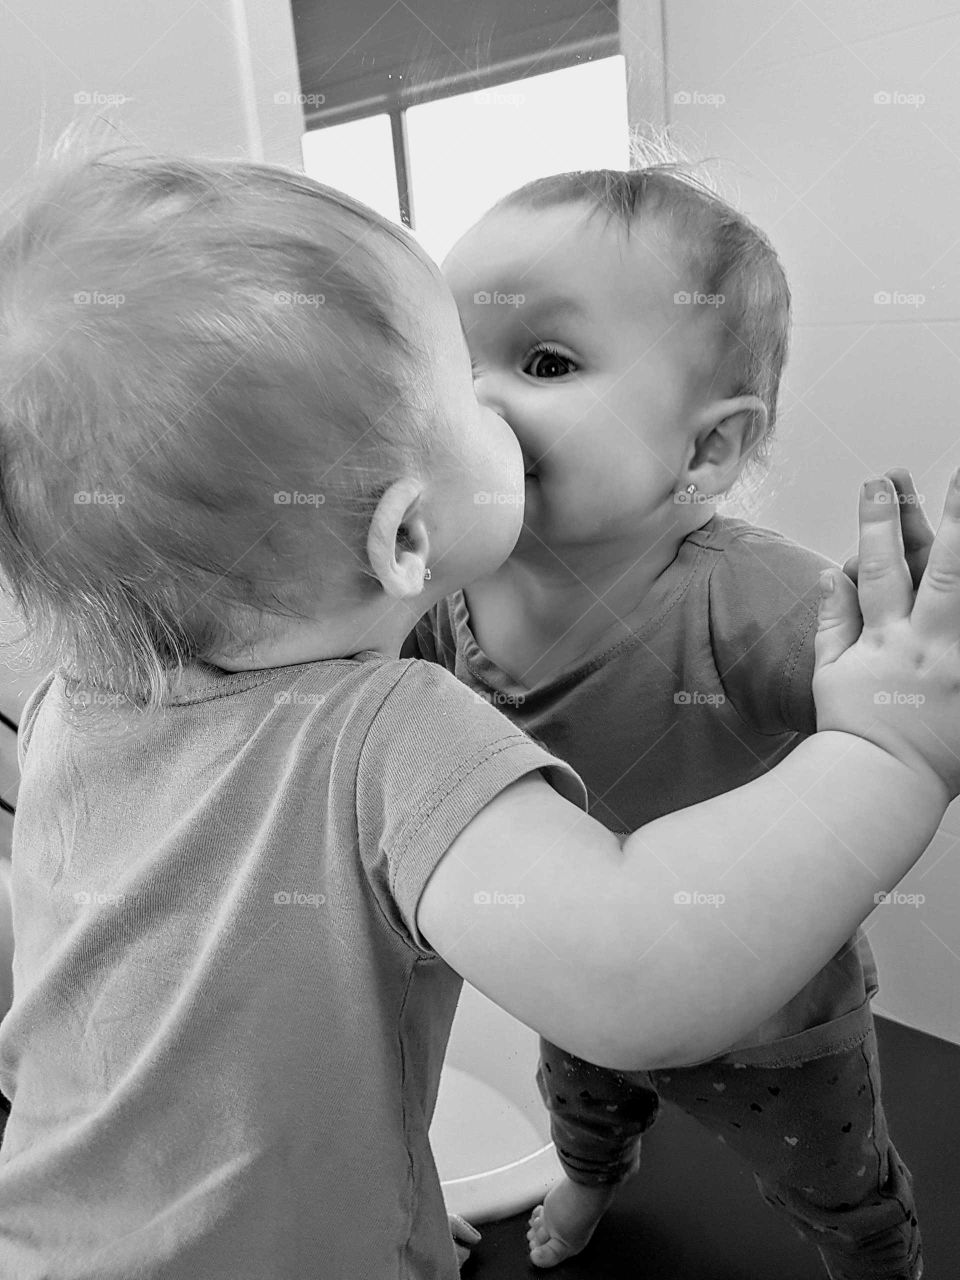 Baby kissing her reflection in mirror